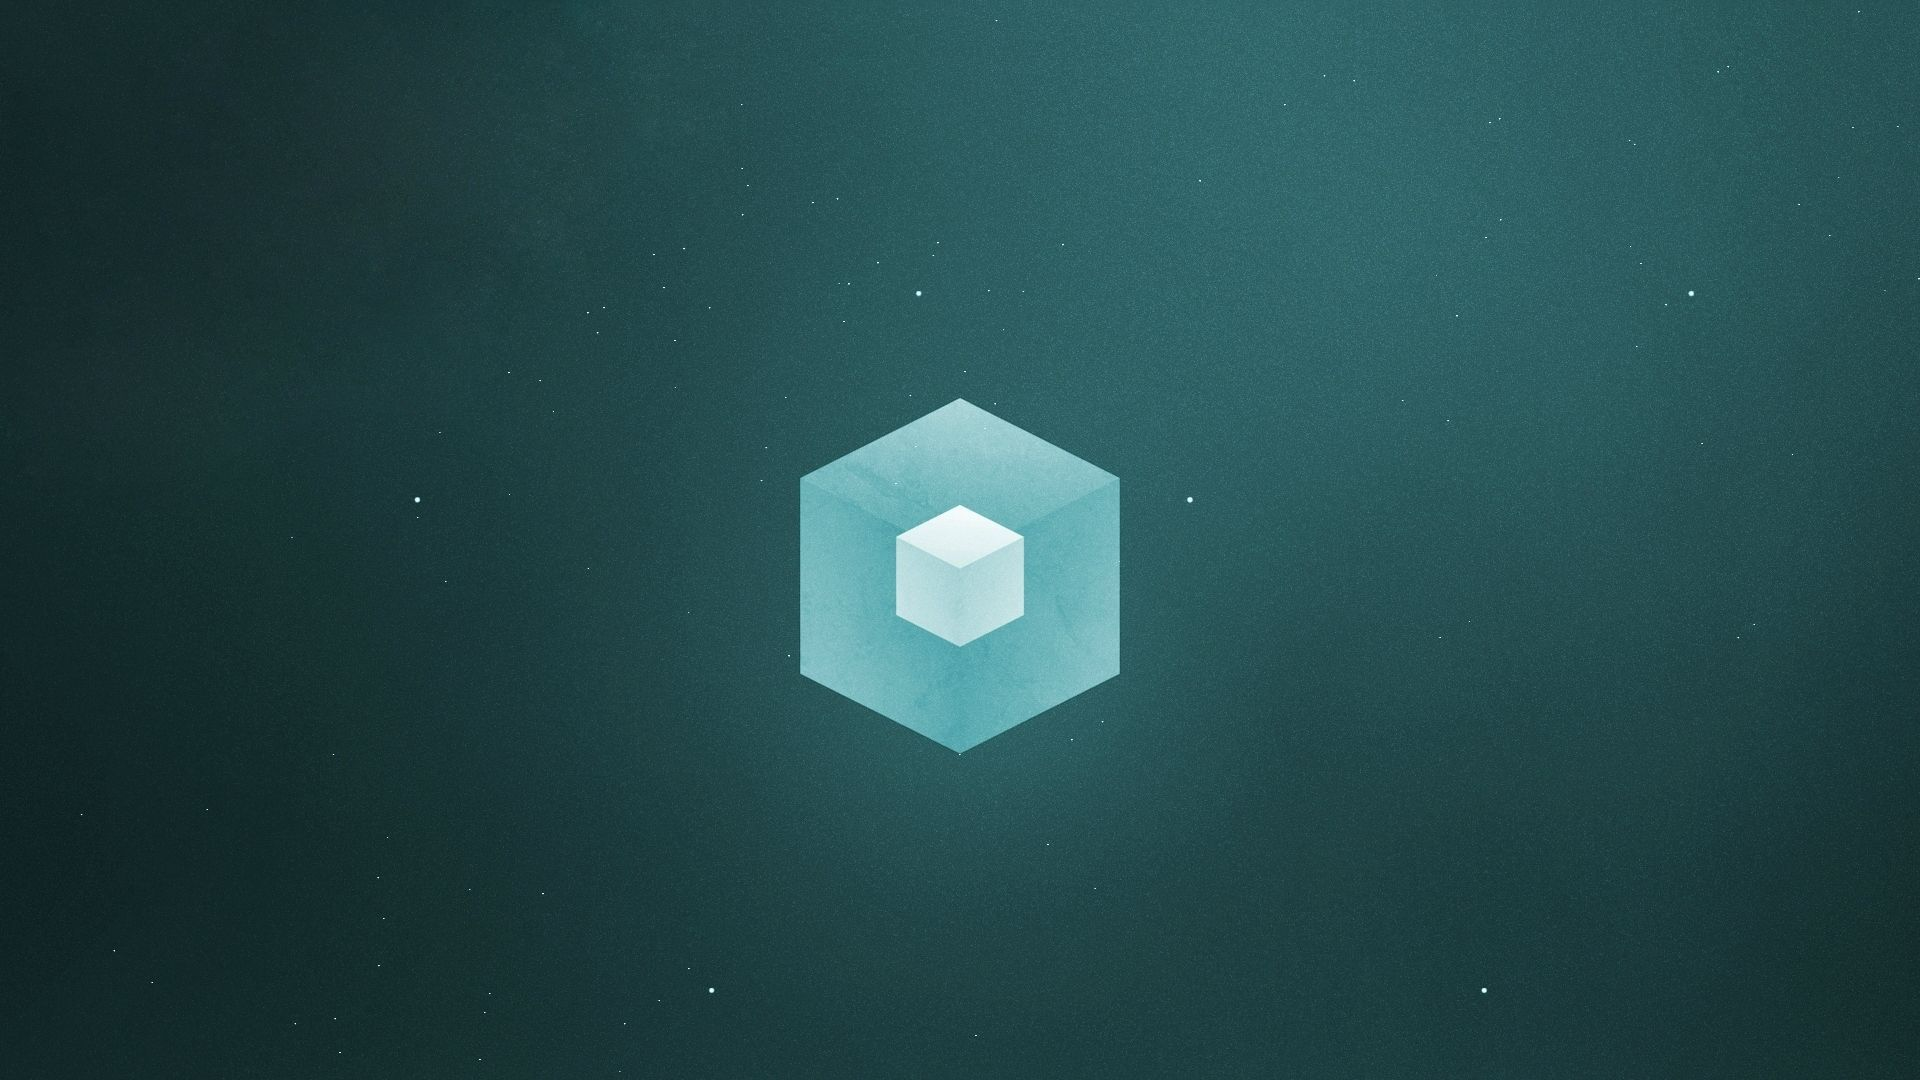 Hd 1920 X 1080 Teal Geometry Con Immagini Icone Sfondi